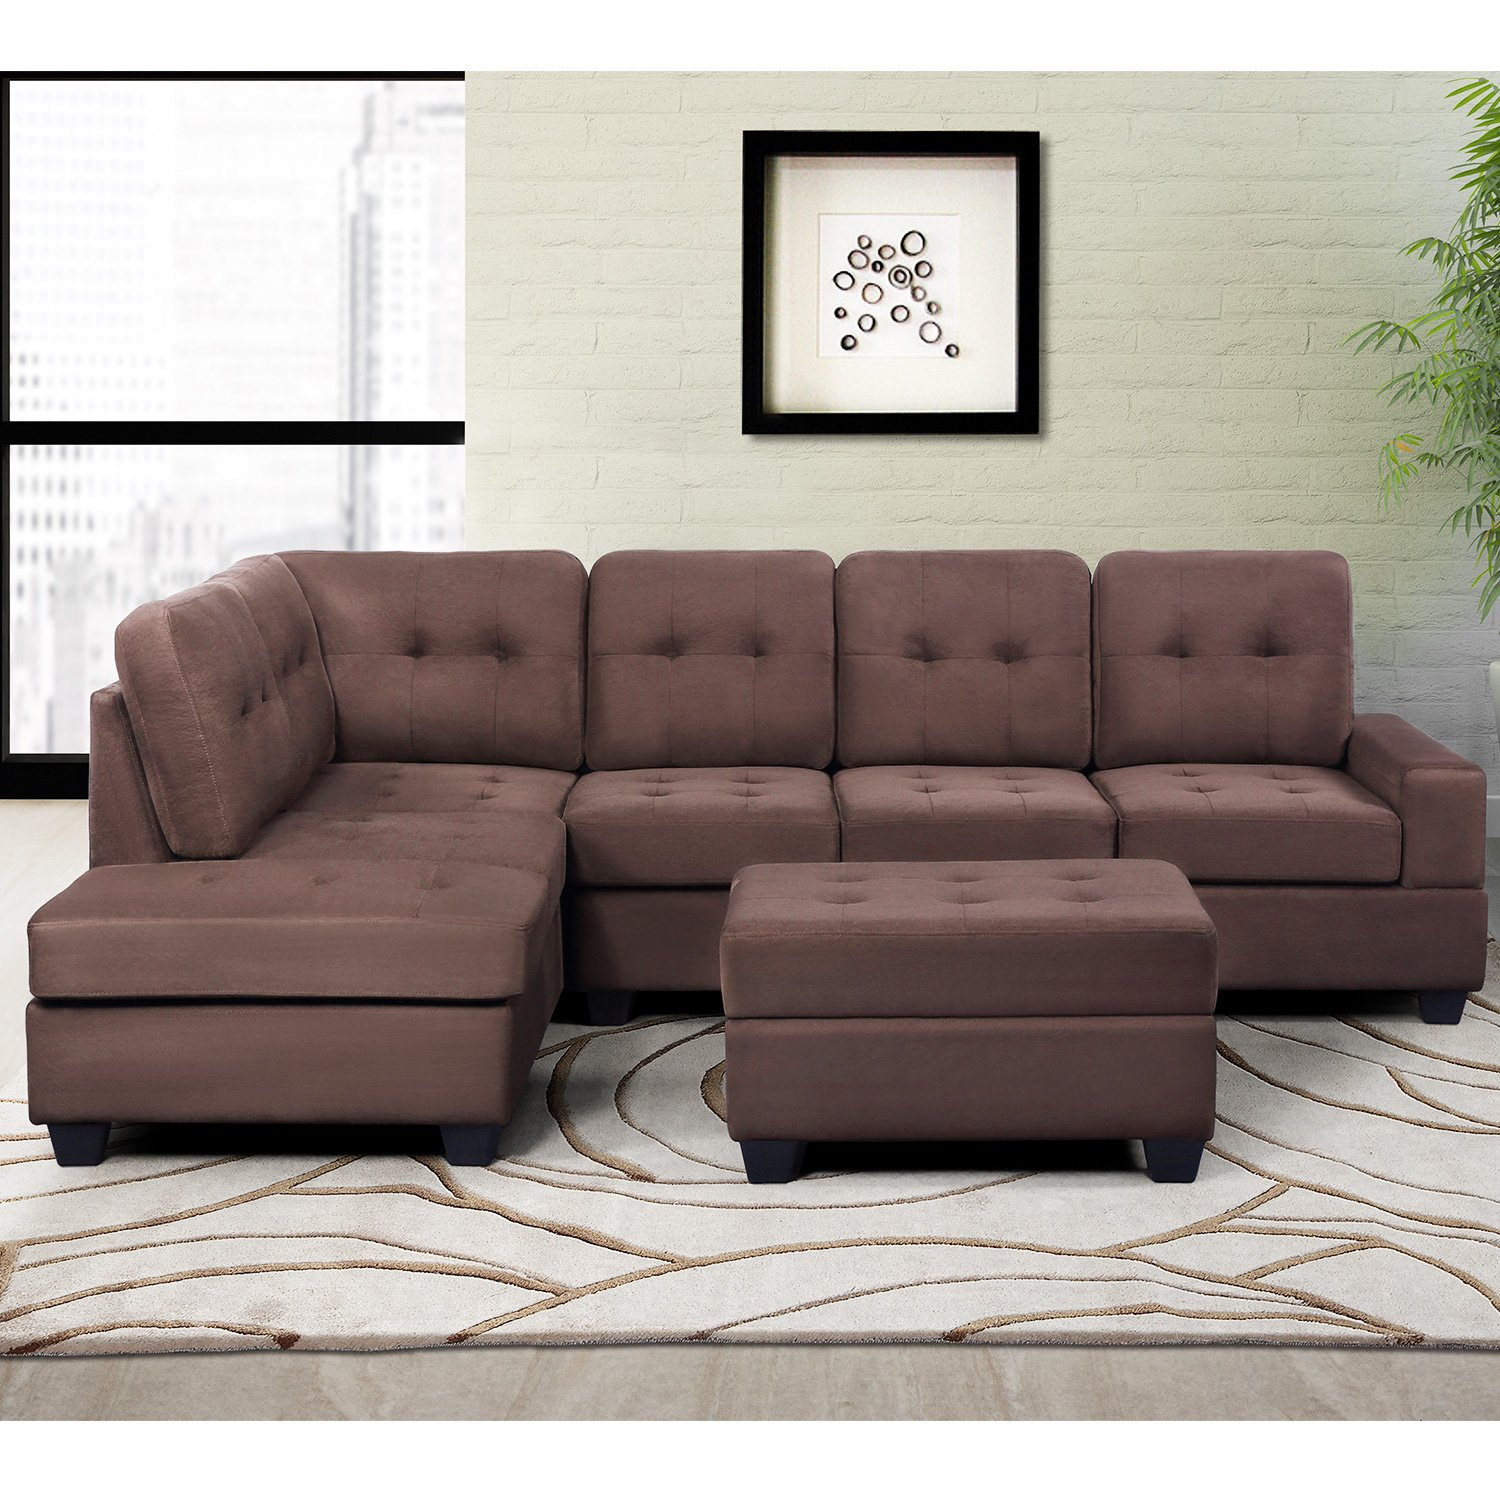 Harper & Bright Designs 3 Piece Sectional Sofa Microfiber with Reversible Chaise Lounge Storage Ottoman and Cup Holders (Brown) by Harper & Bright Designs (Image #2)